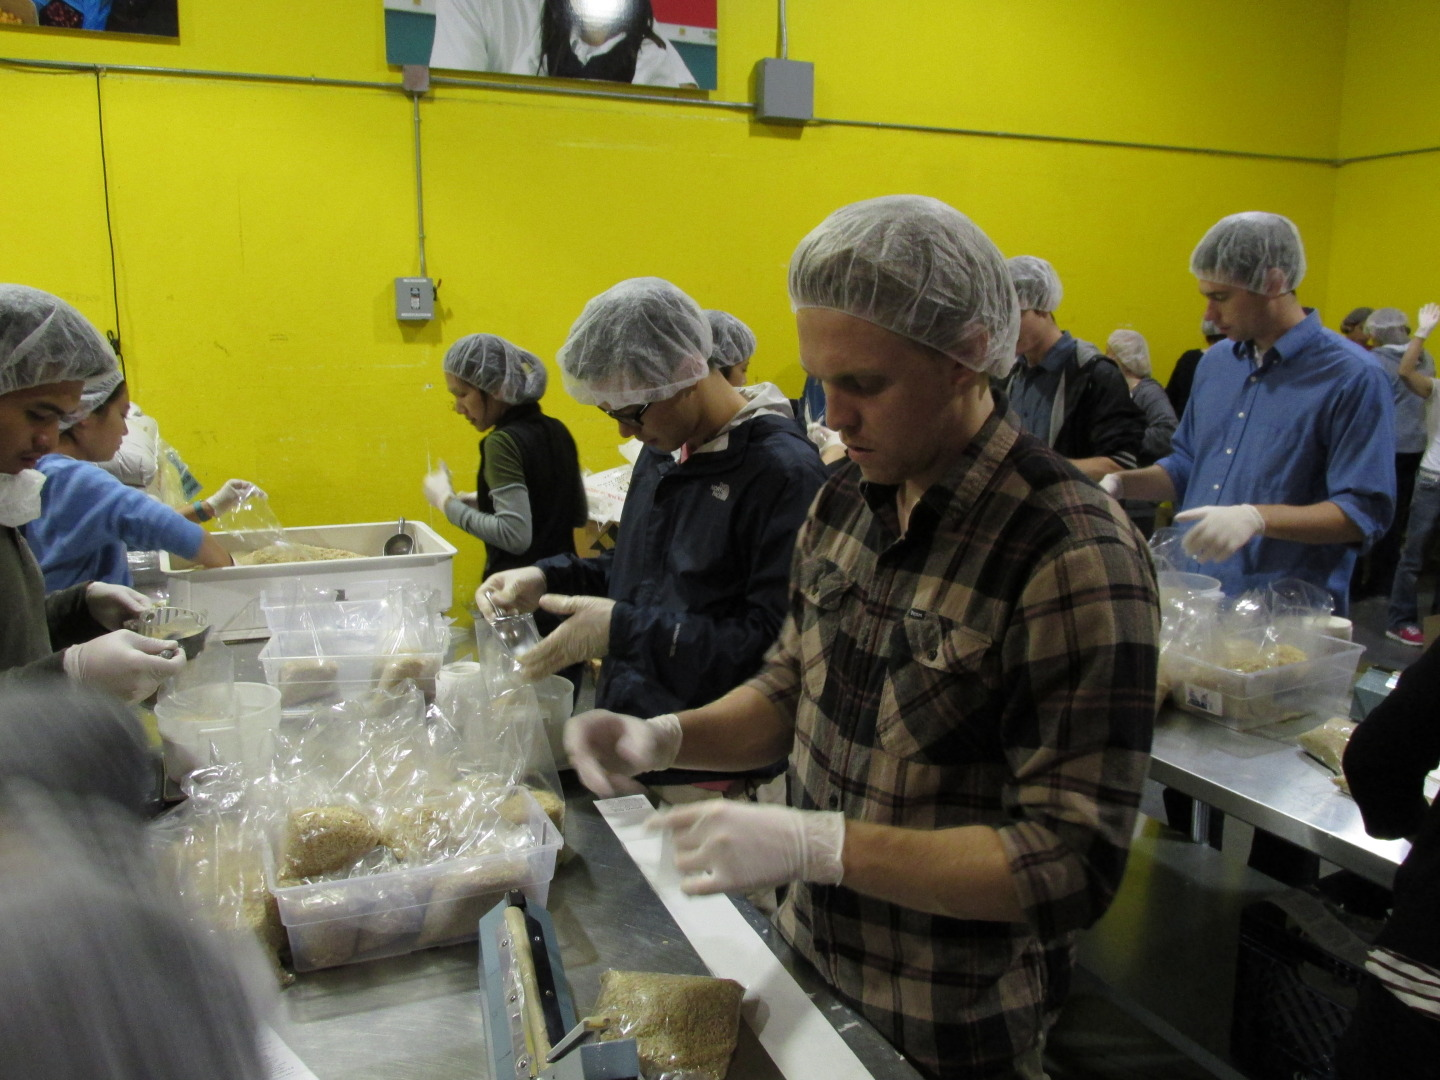 The San Francisco-Marin Food Bank saw about sixty volunteers show up to the warehouse the day before Thanksgiving. The organization's spokesperson, Blain Johnson, says they're expecting at least 90 volunteers to help out at the Potrero Hill warehouse on Turkey Day. (Sean McGrier/KQED)